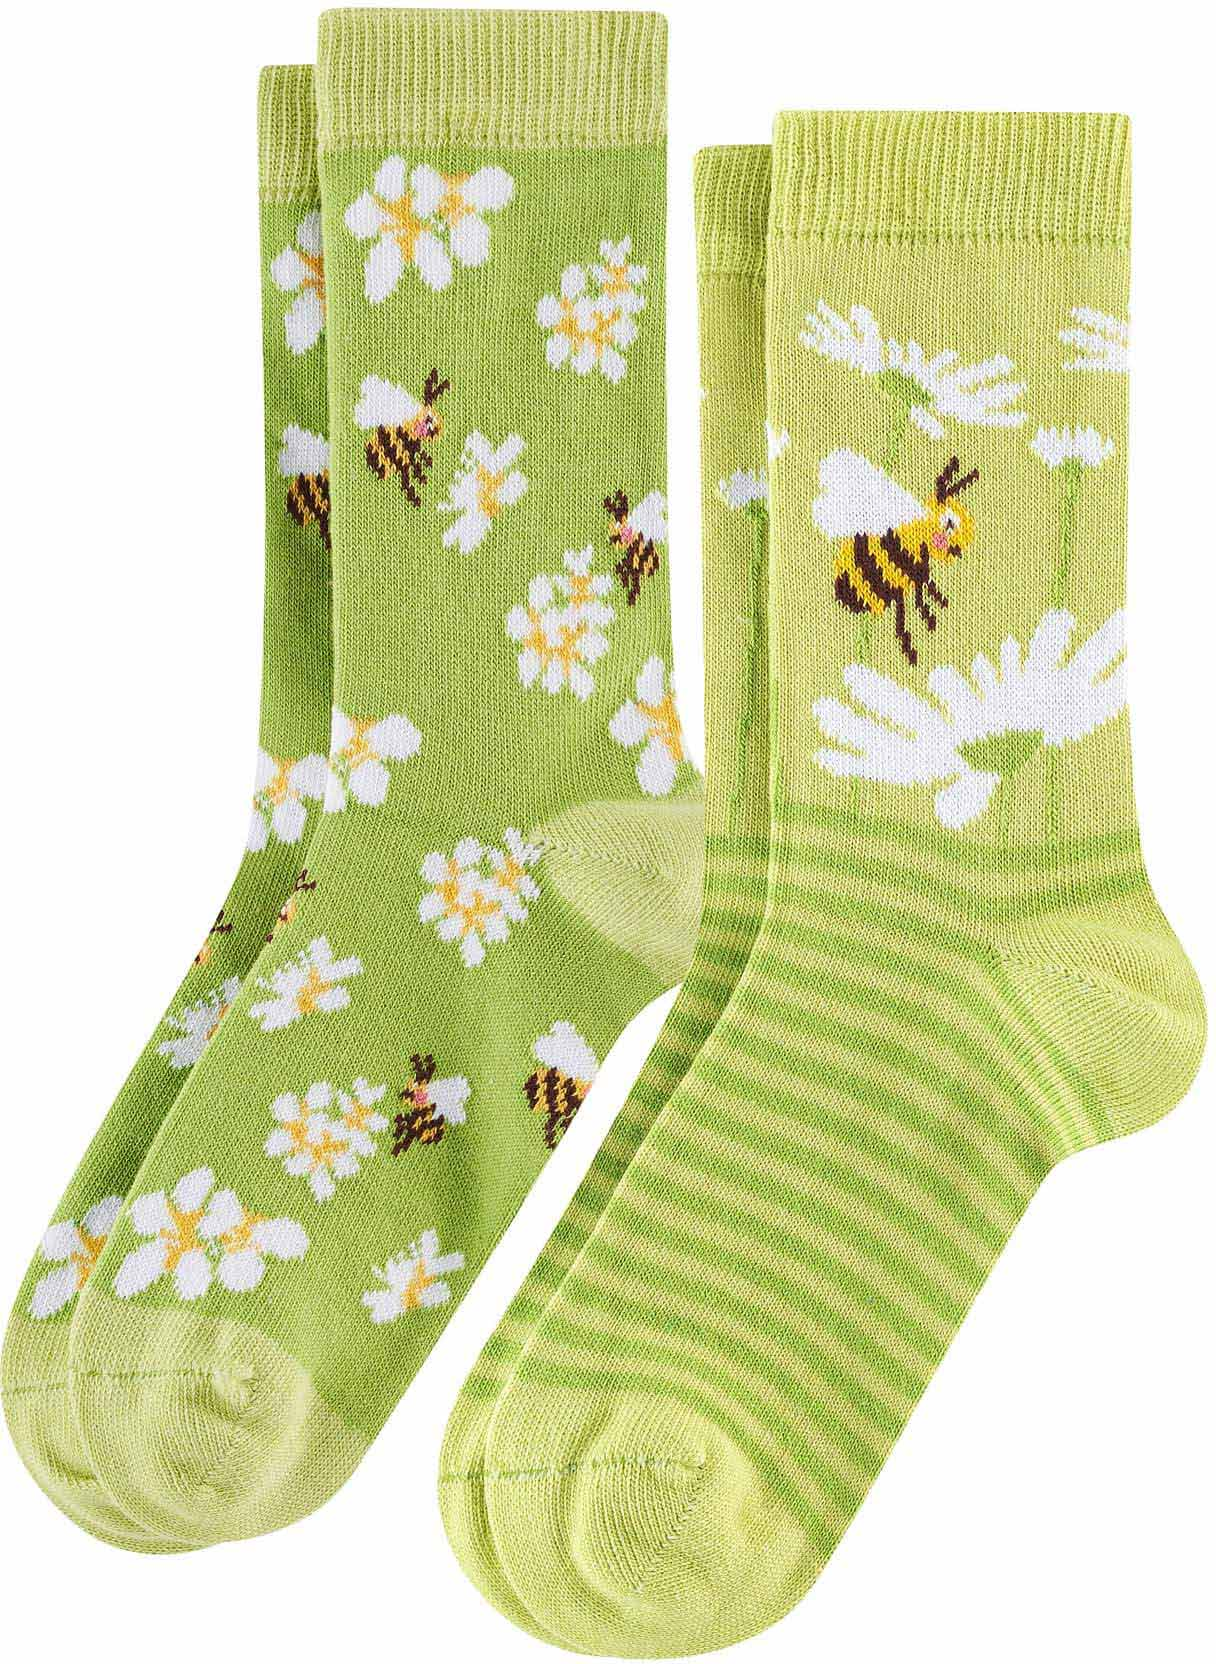 Living Crafts Baby Socken 3er Pack Bio-Baumwolle